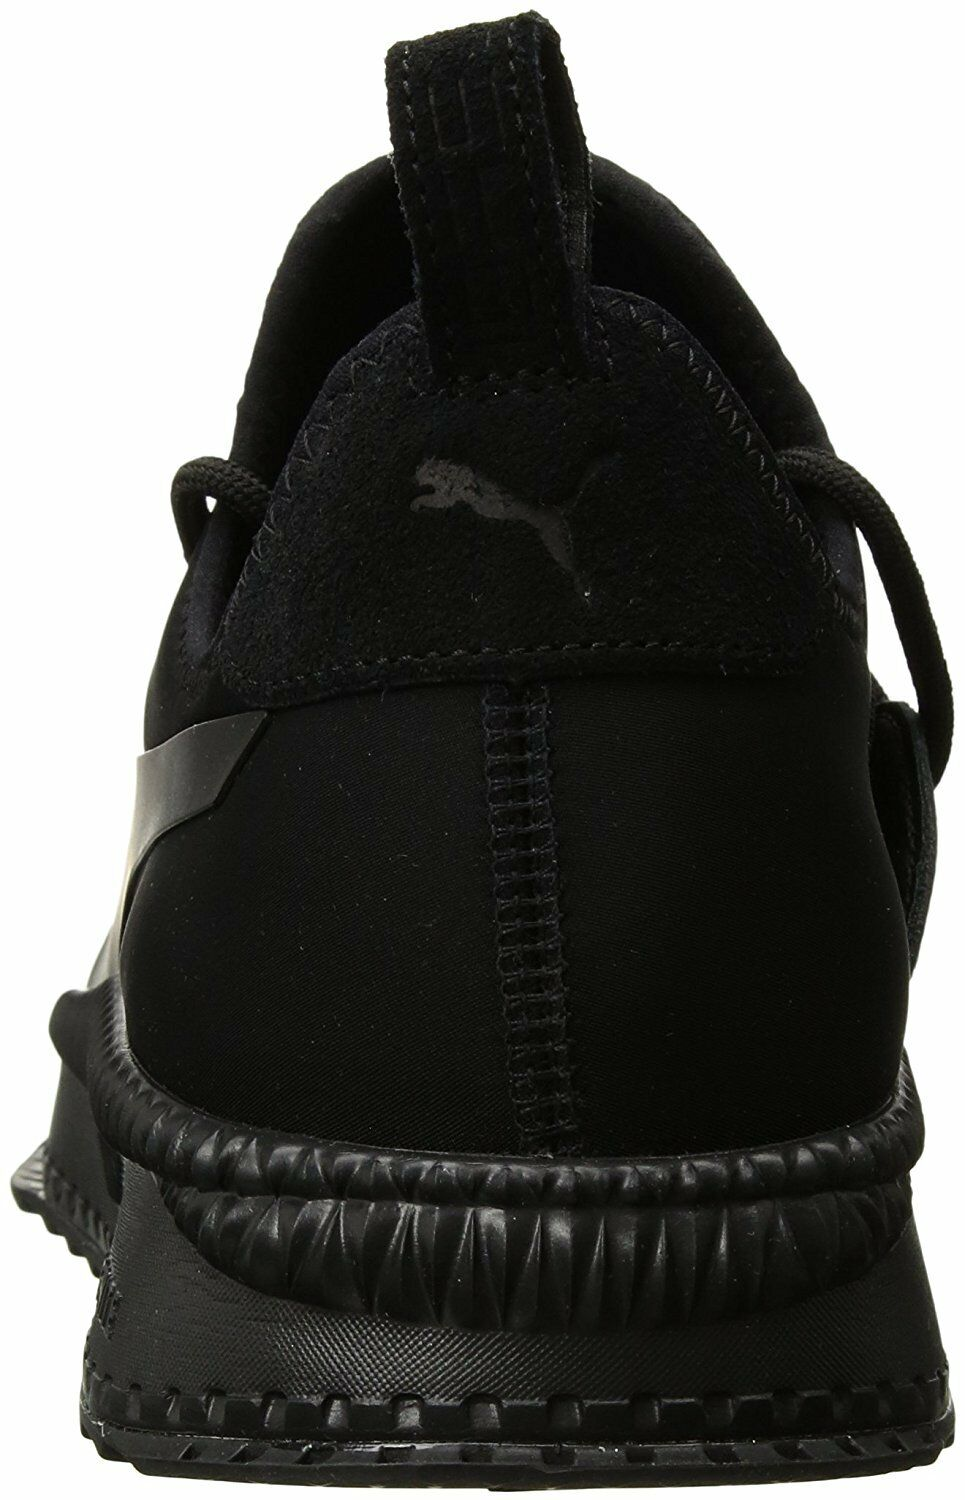 Men's Men's Men's shoes PUMA TSUGI Apex Sneaker 36609001 Black New 74fdad